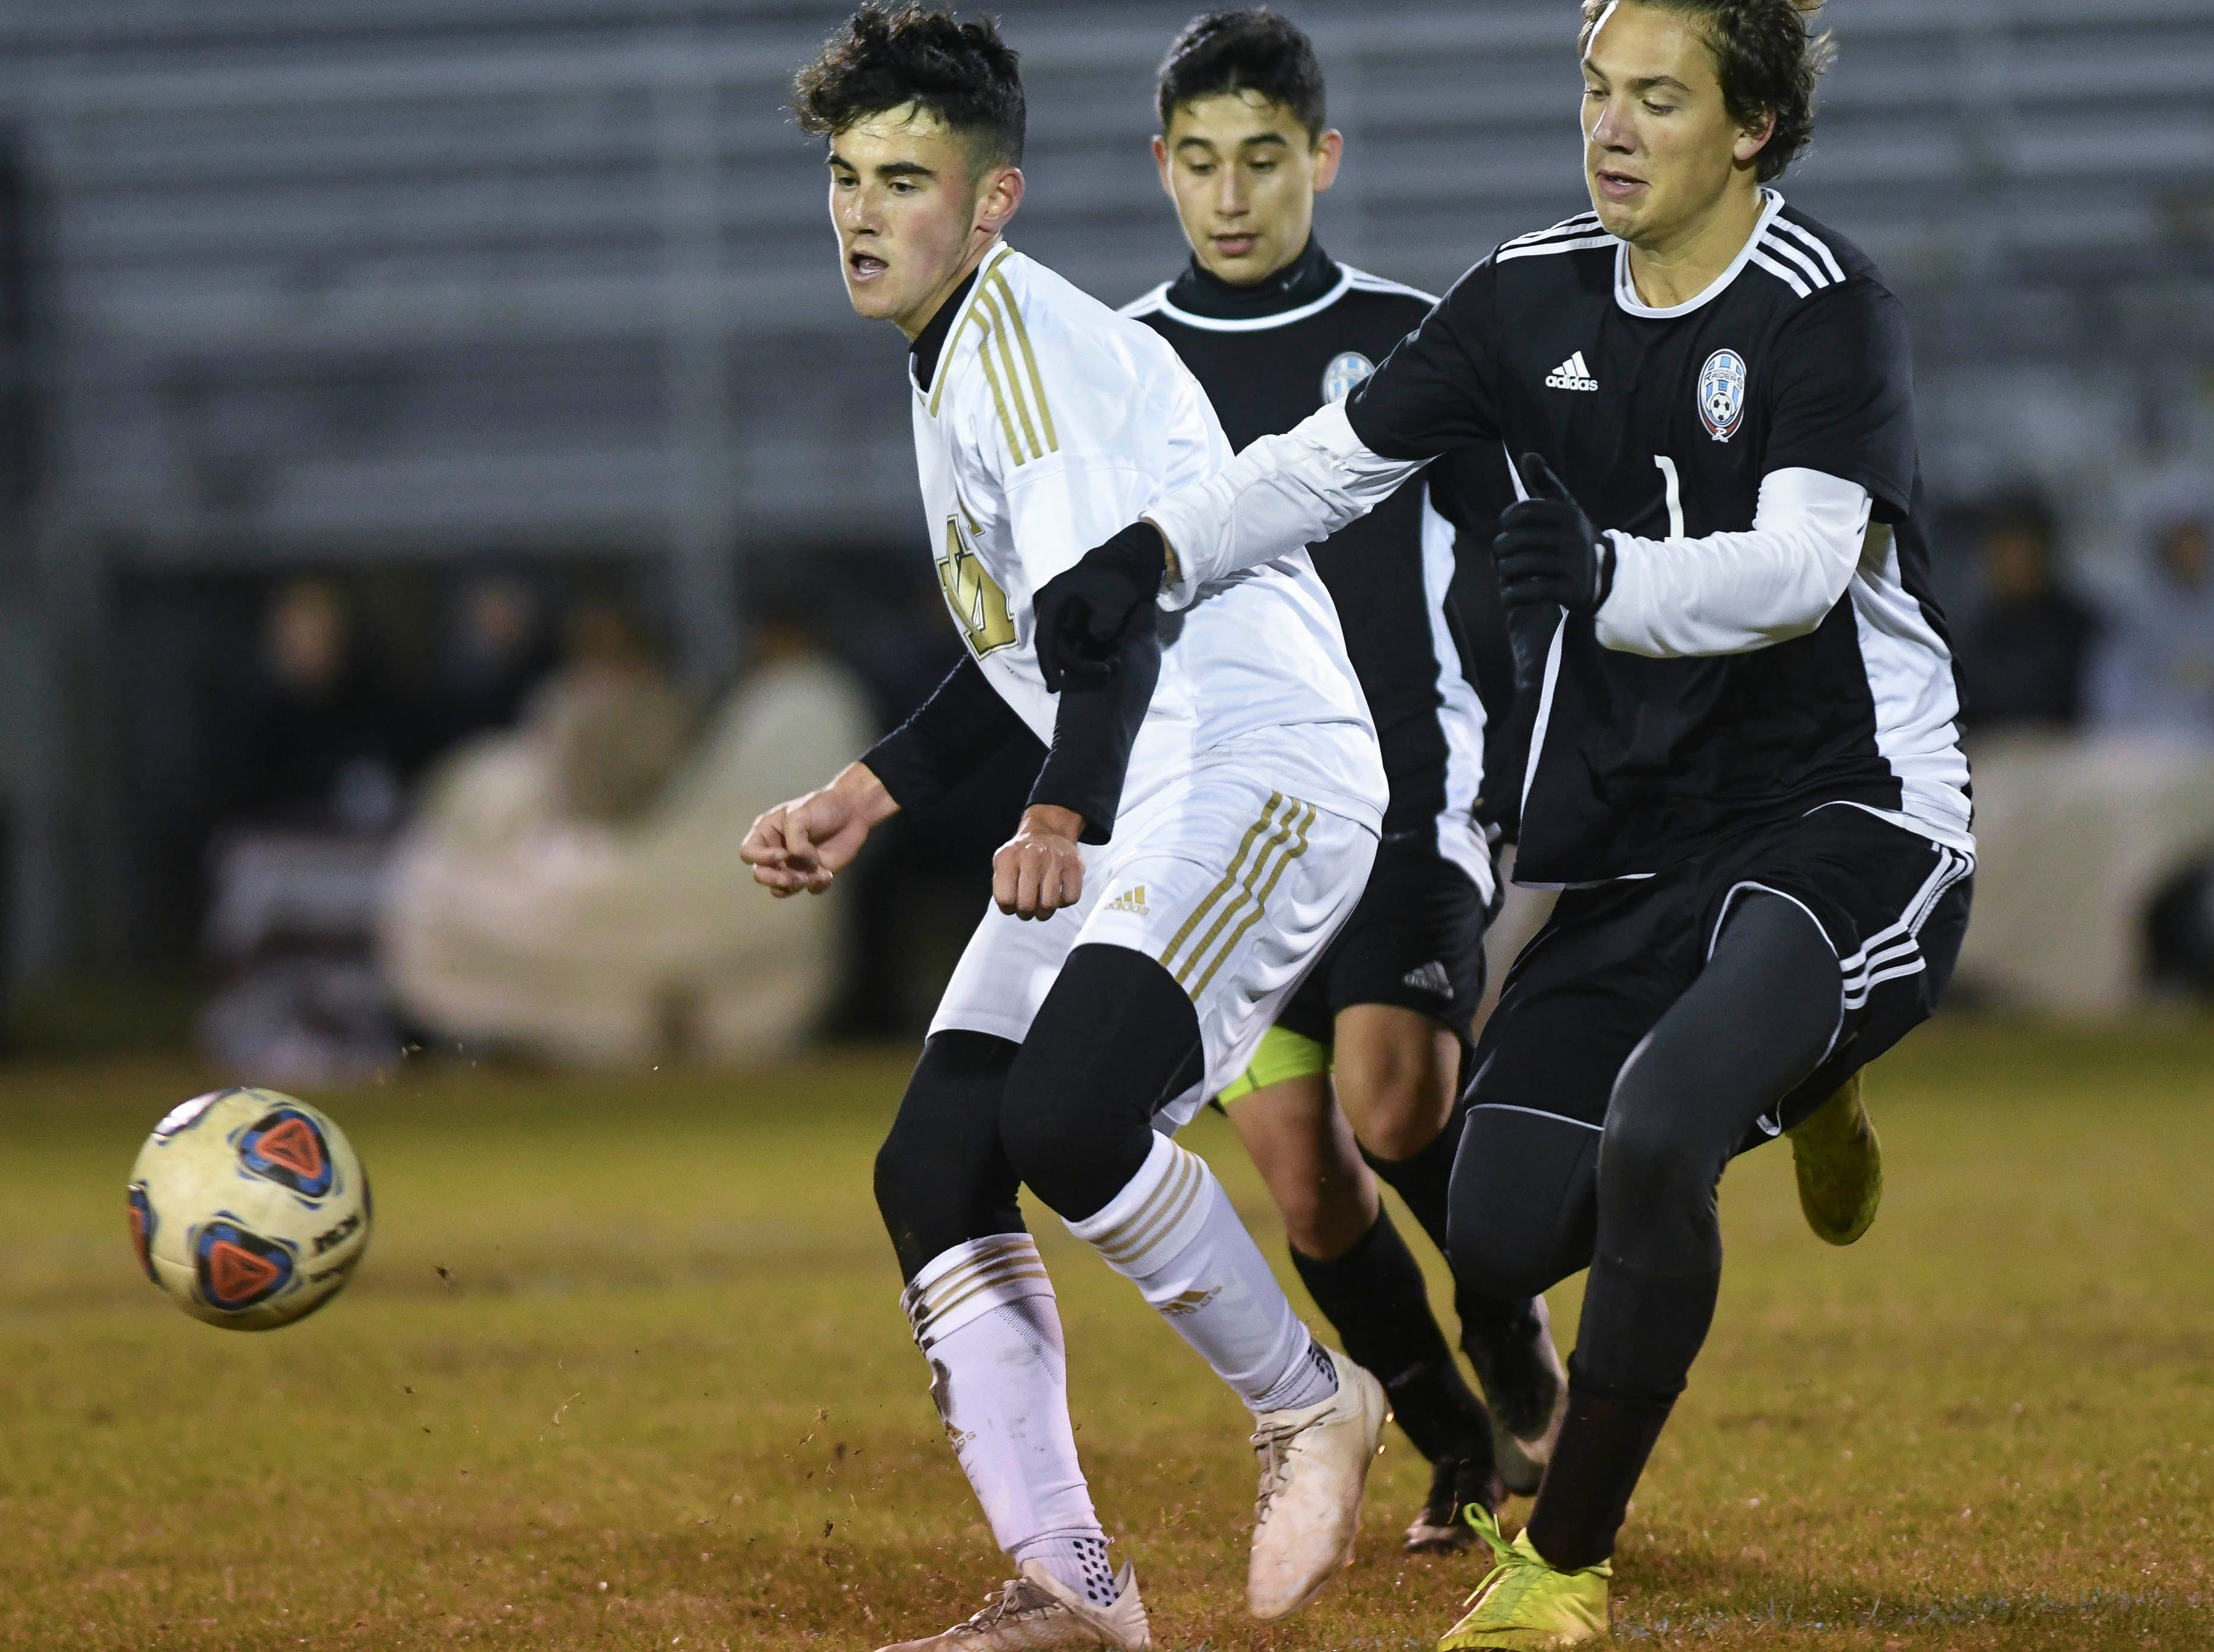 Arath Castaneda (5) and Richie Chamberlin of Rockledge pursue Andrew Sequeira of Merritt Island during Wednesday's District 12, Class 3A semifinal at McLarty Stadium.